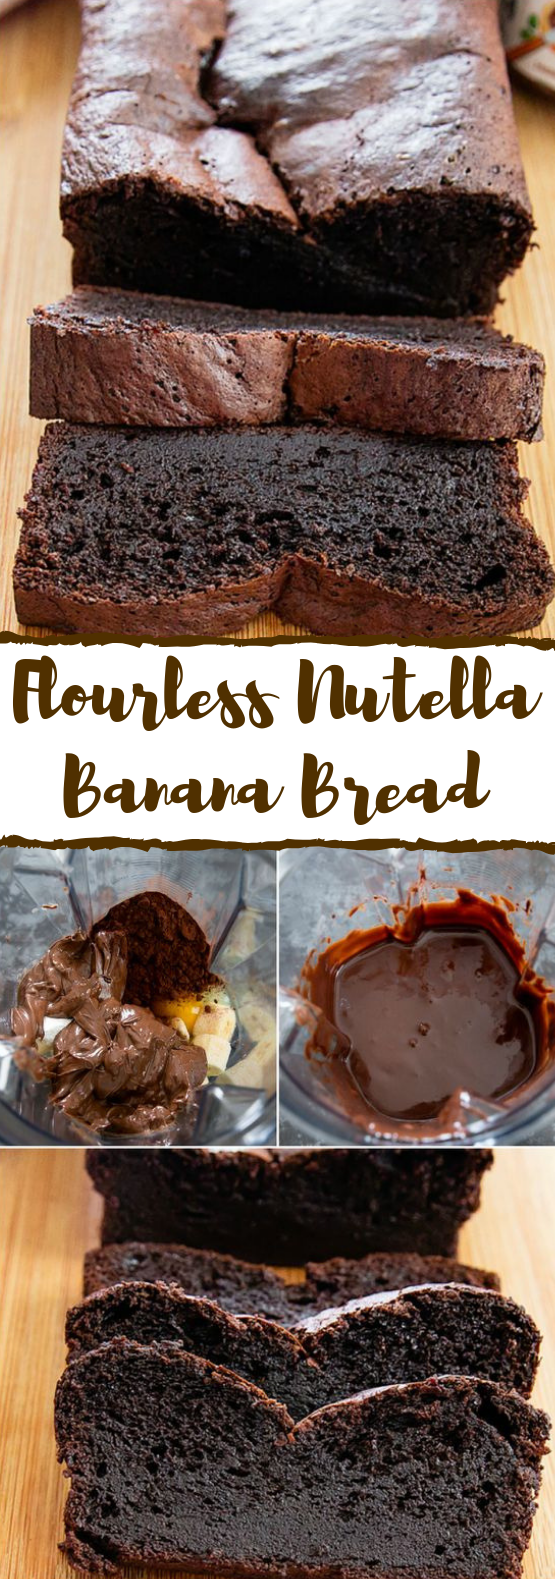 FLOURLESS NUTELLA BANANA BREAD #Chocolate #Dessert